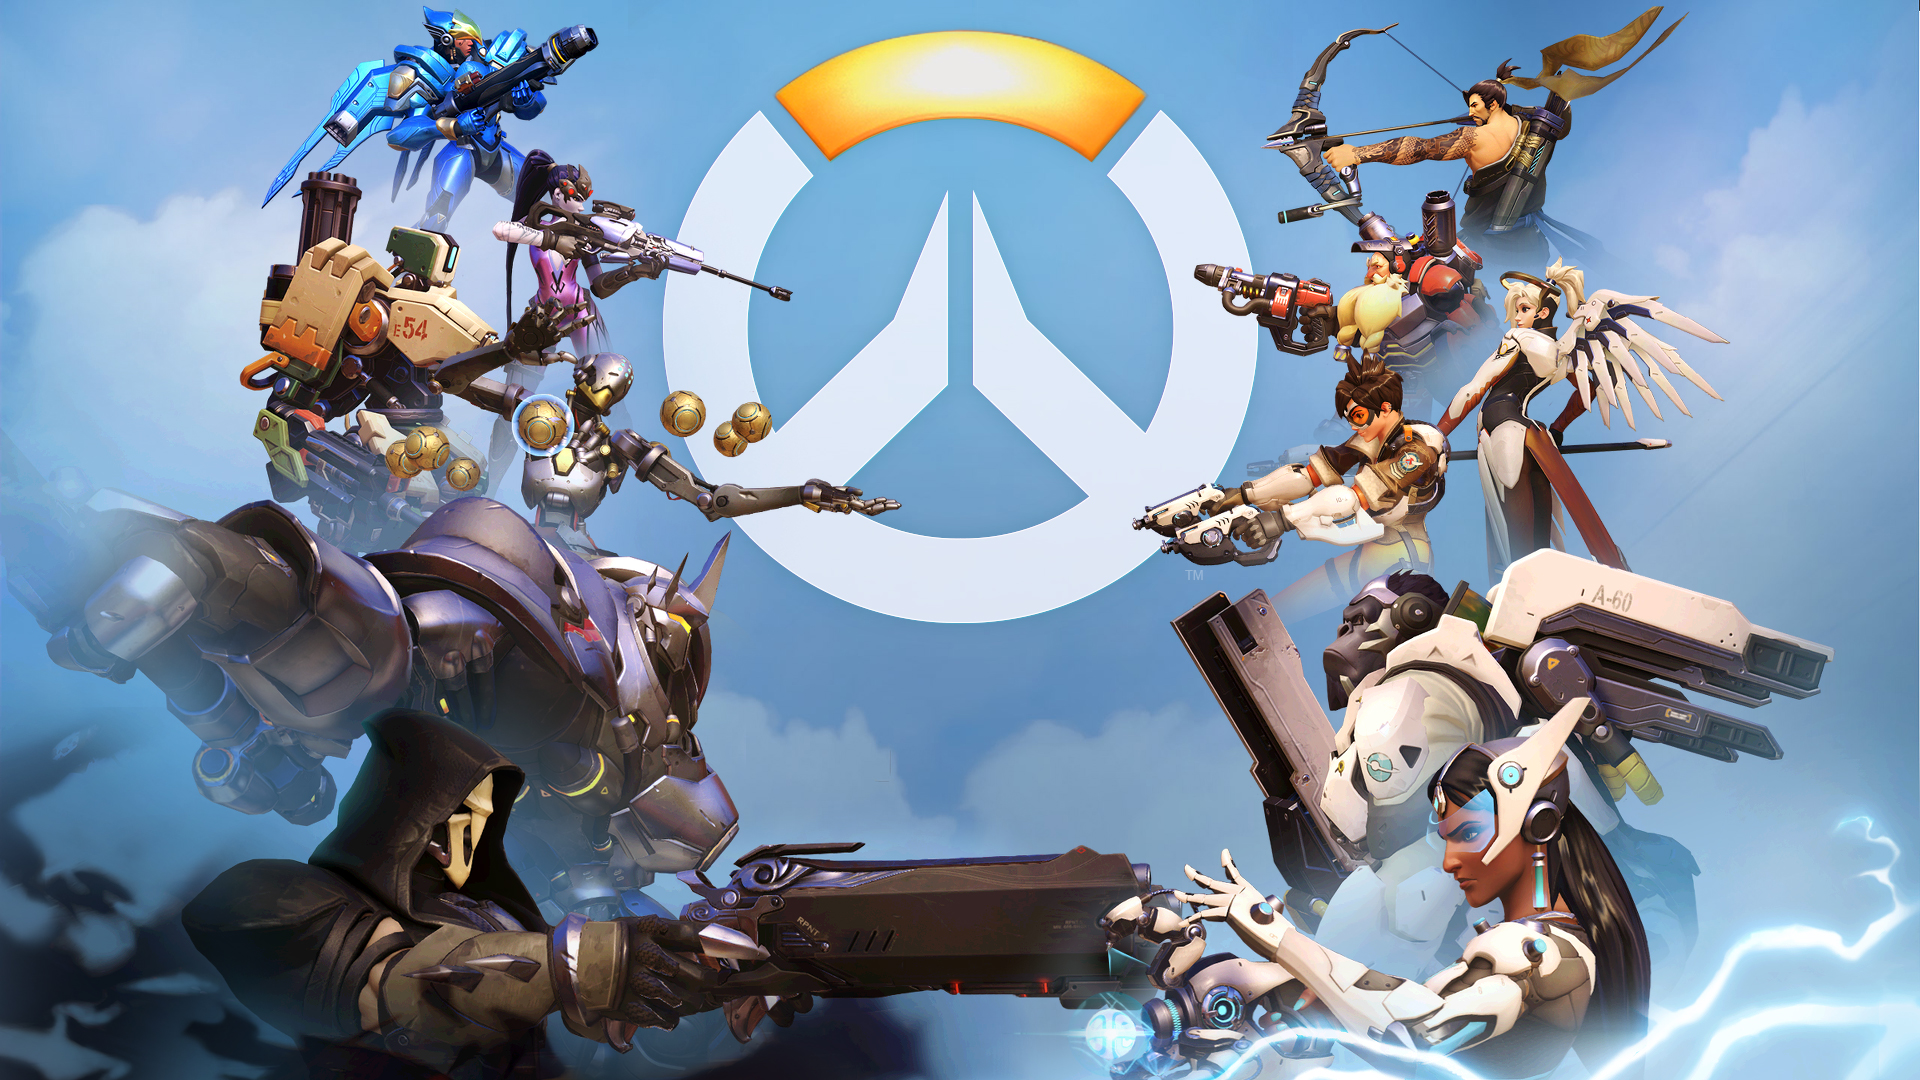 Overwatch Full Hd Wallpaper Hd Overwatch Backgrounds 1920x1080 Download Hd Wallpaper Wallpapertip